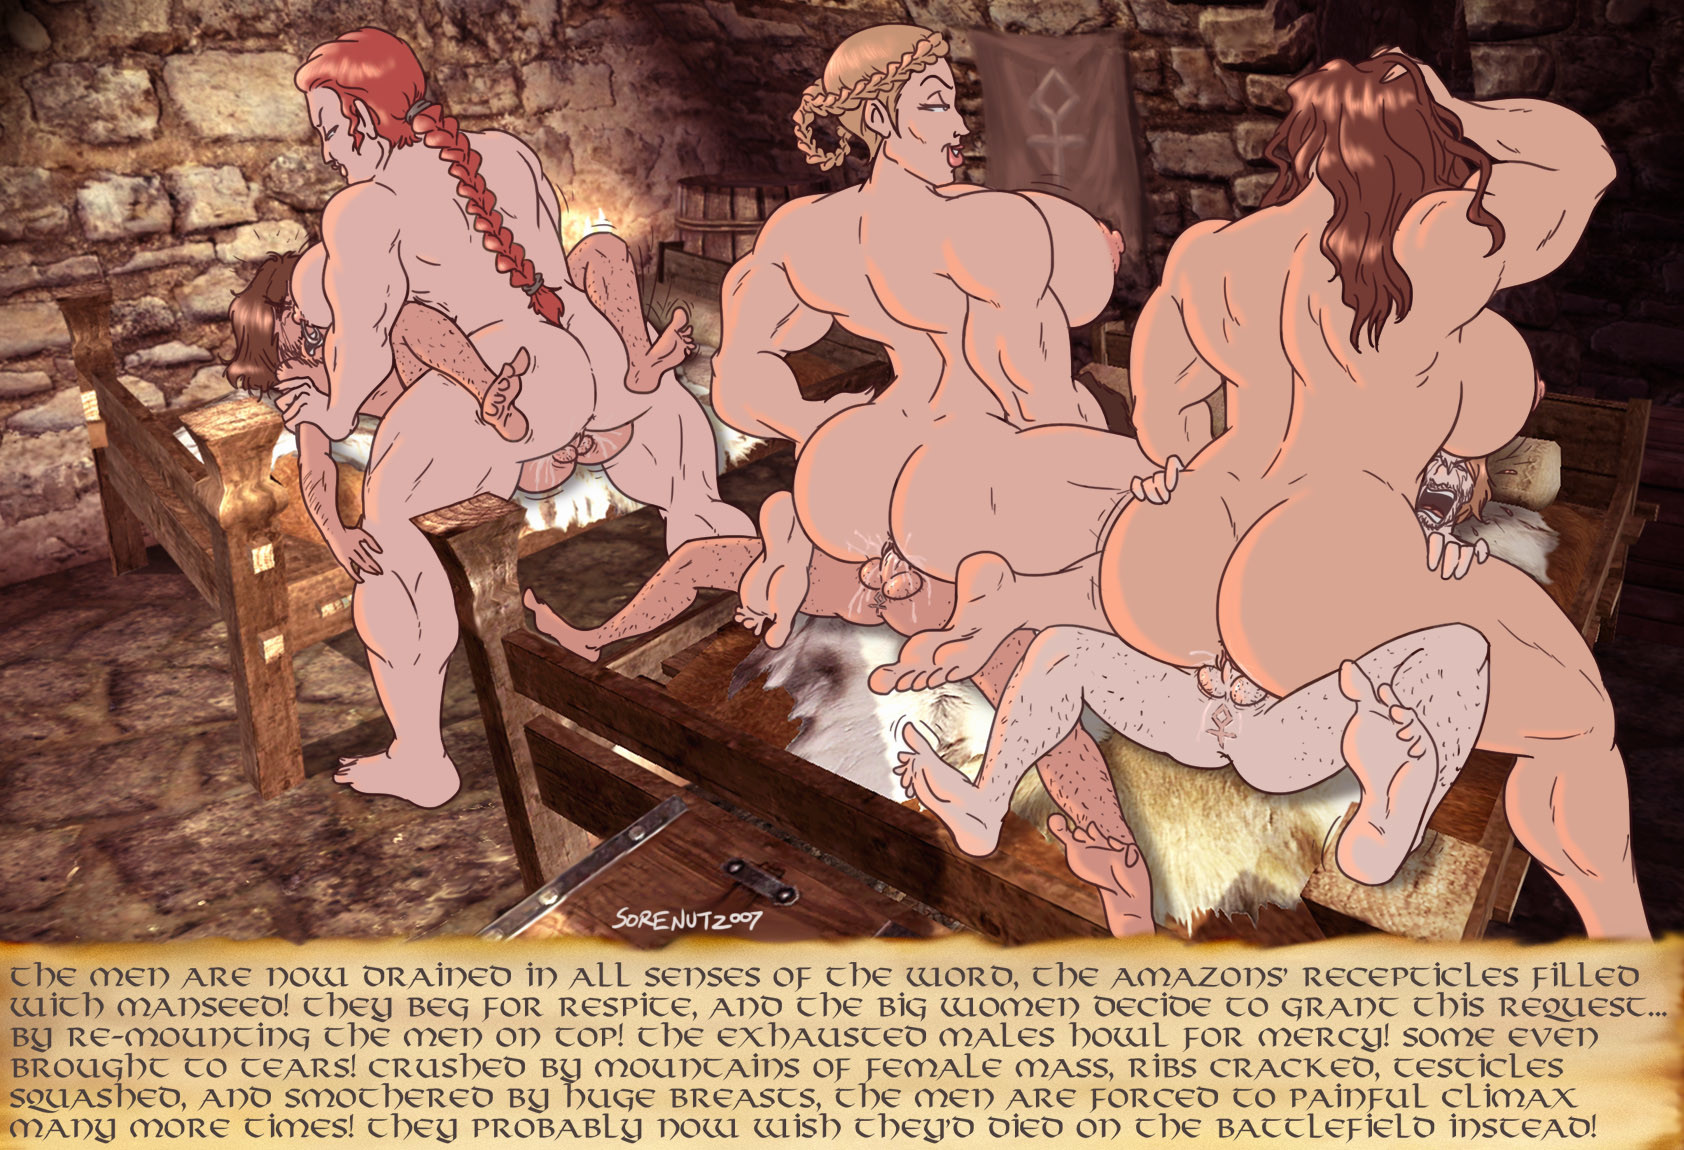 castration-illustration-15